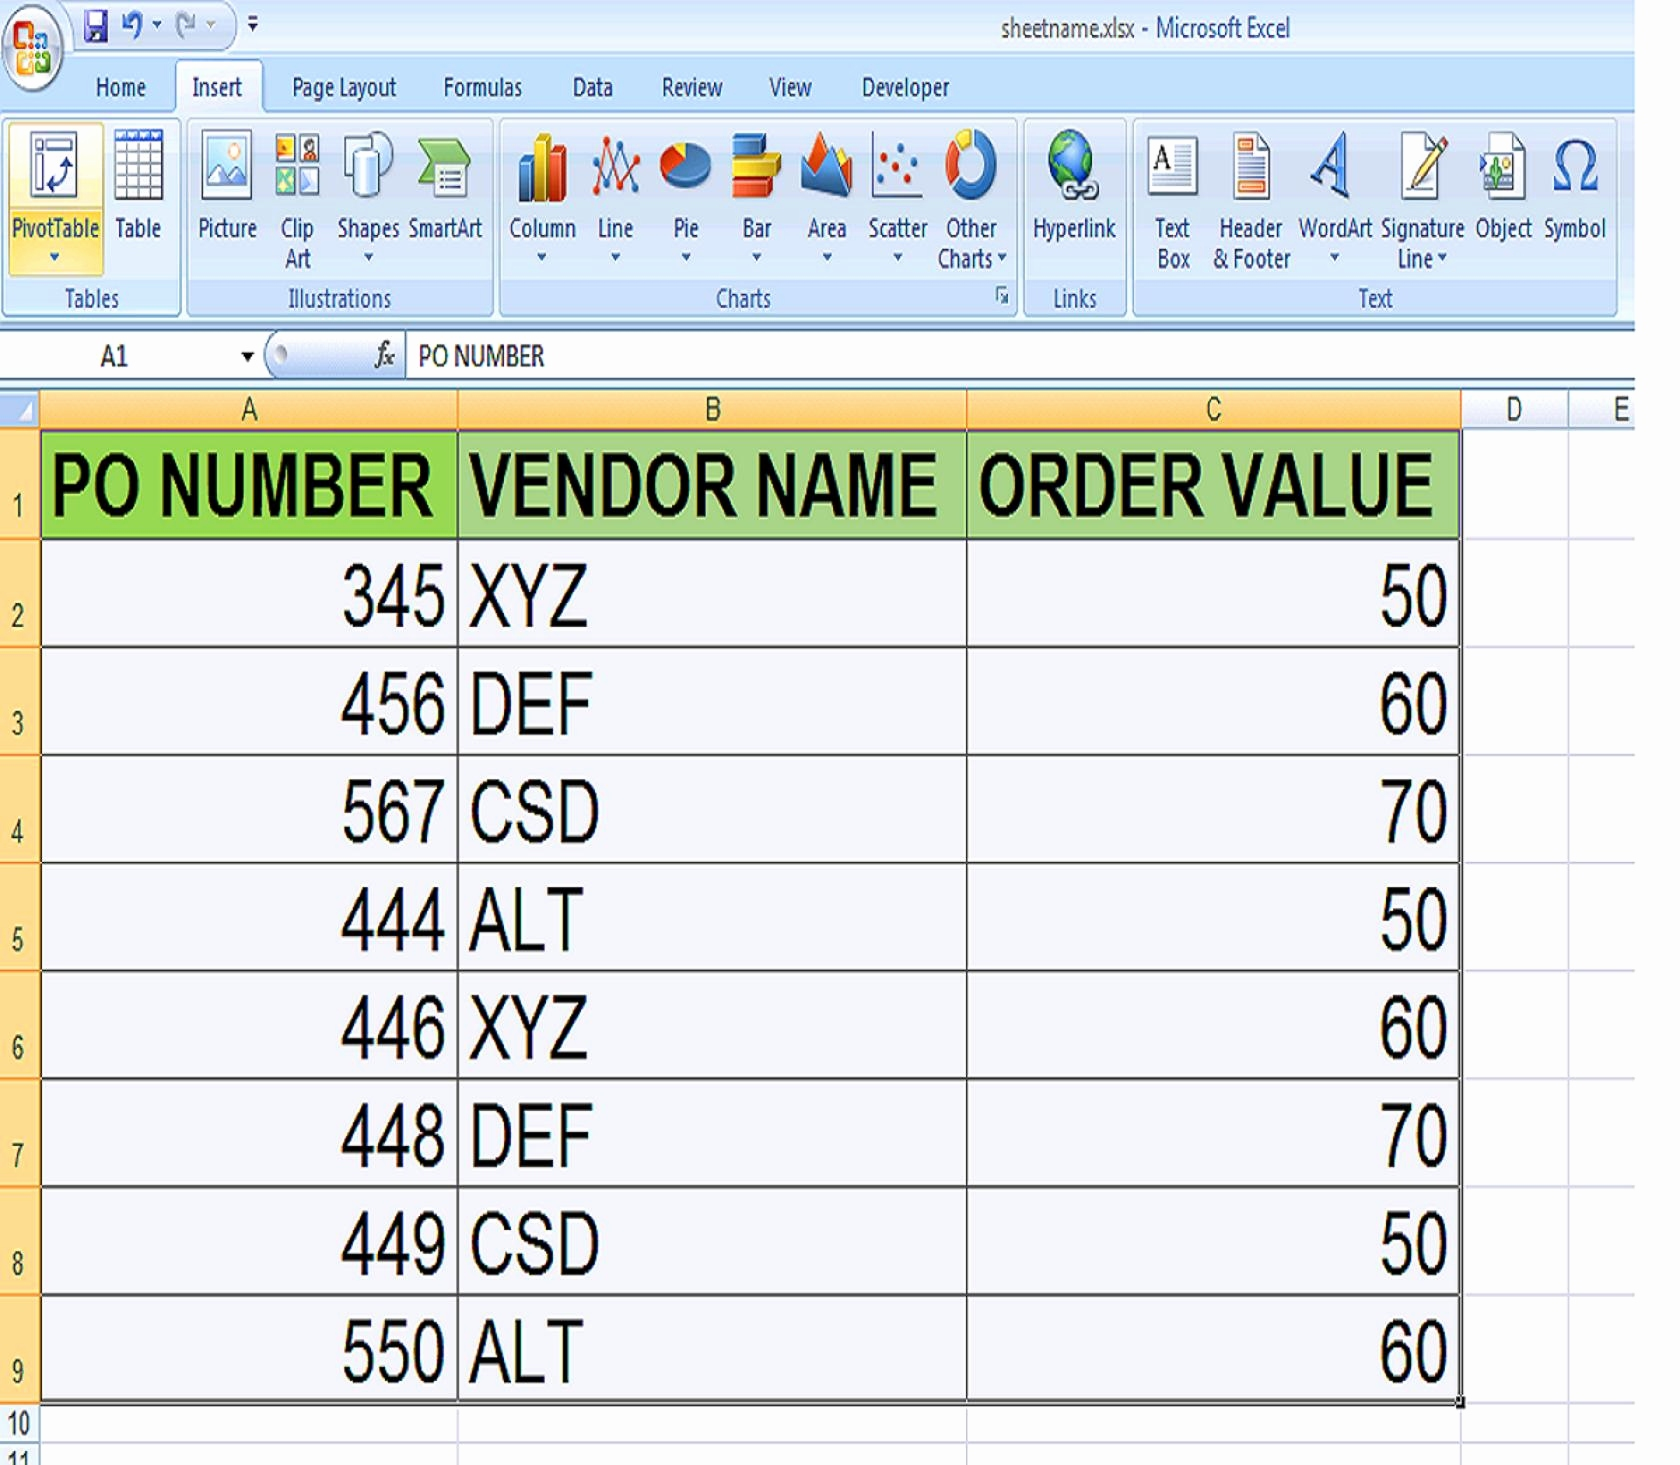 Fresh Informatica Resumes: Google Spreadsheet Pivot Table Calculated Field Fresh